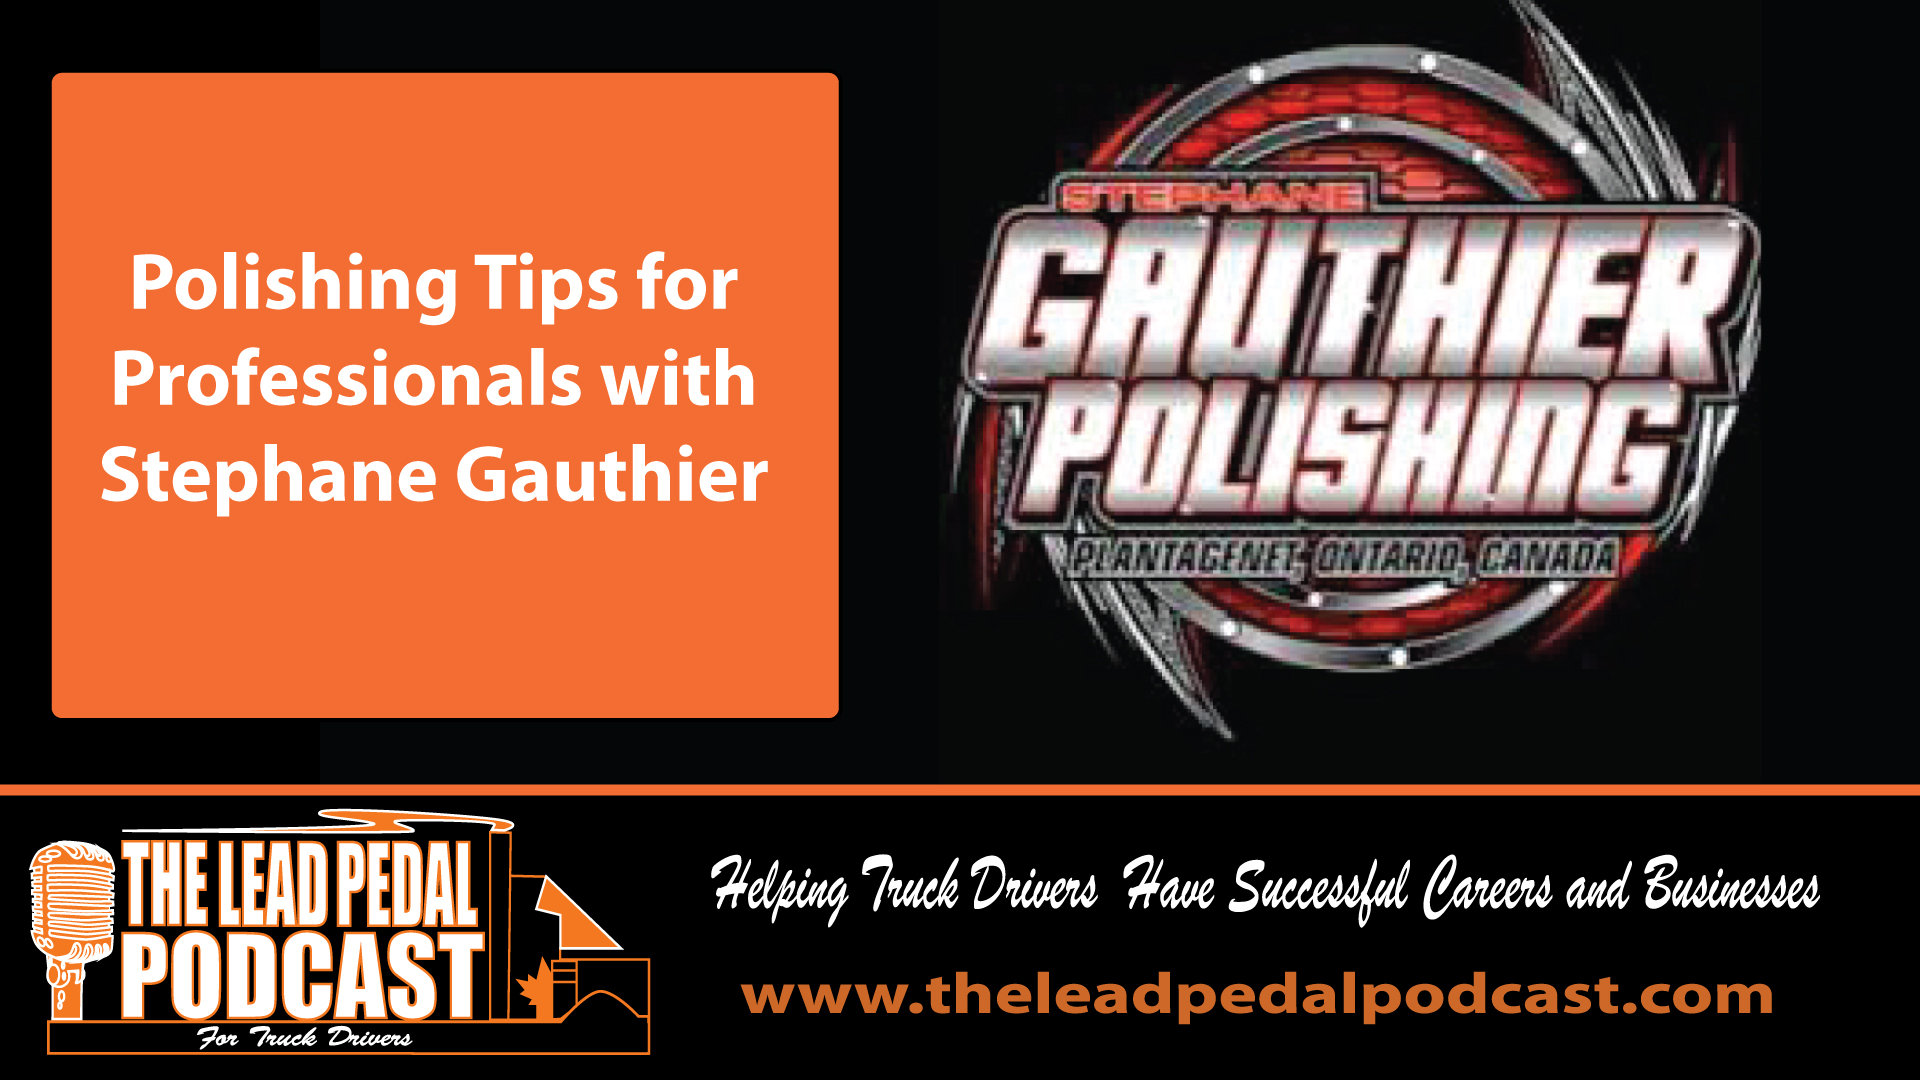 LP643 Polishing Tips with Stephane Gauthier